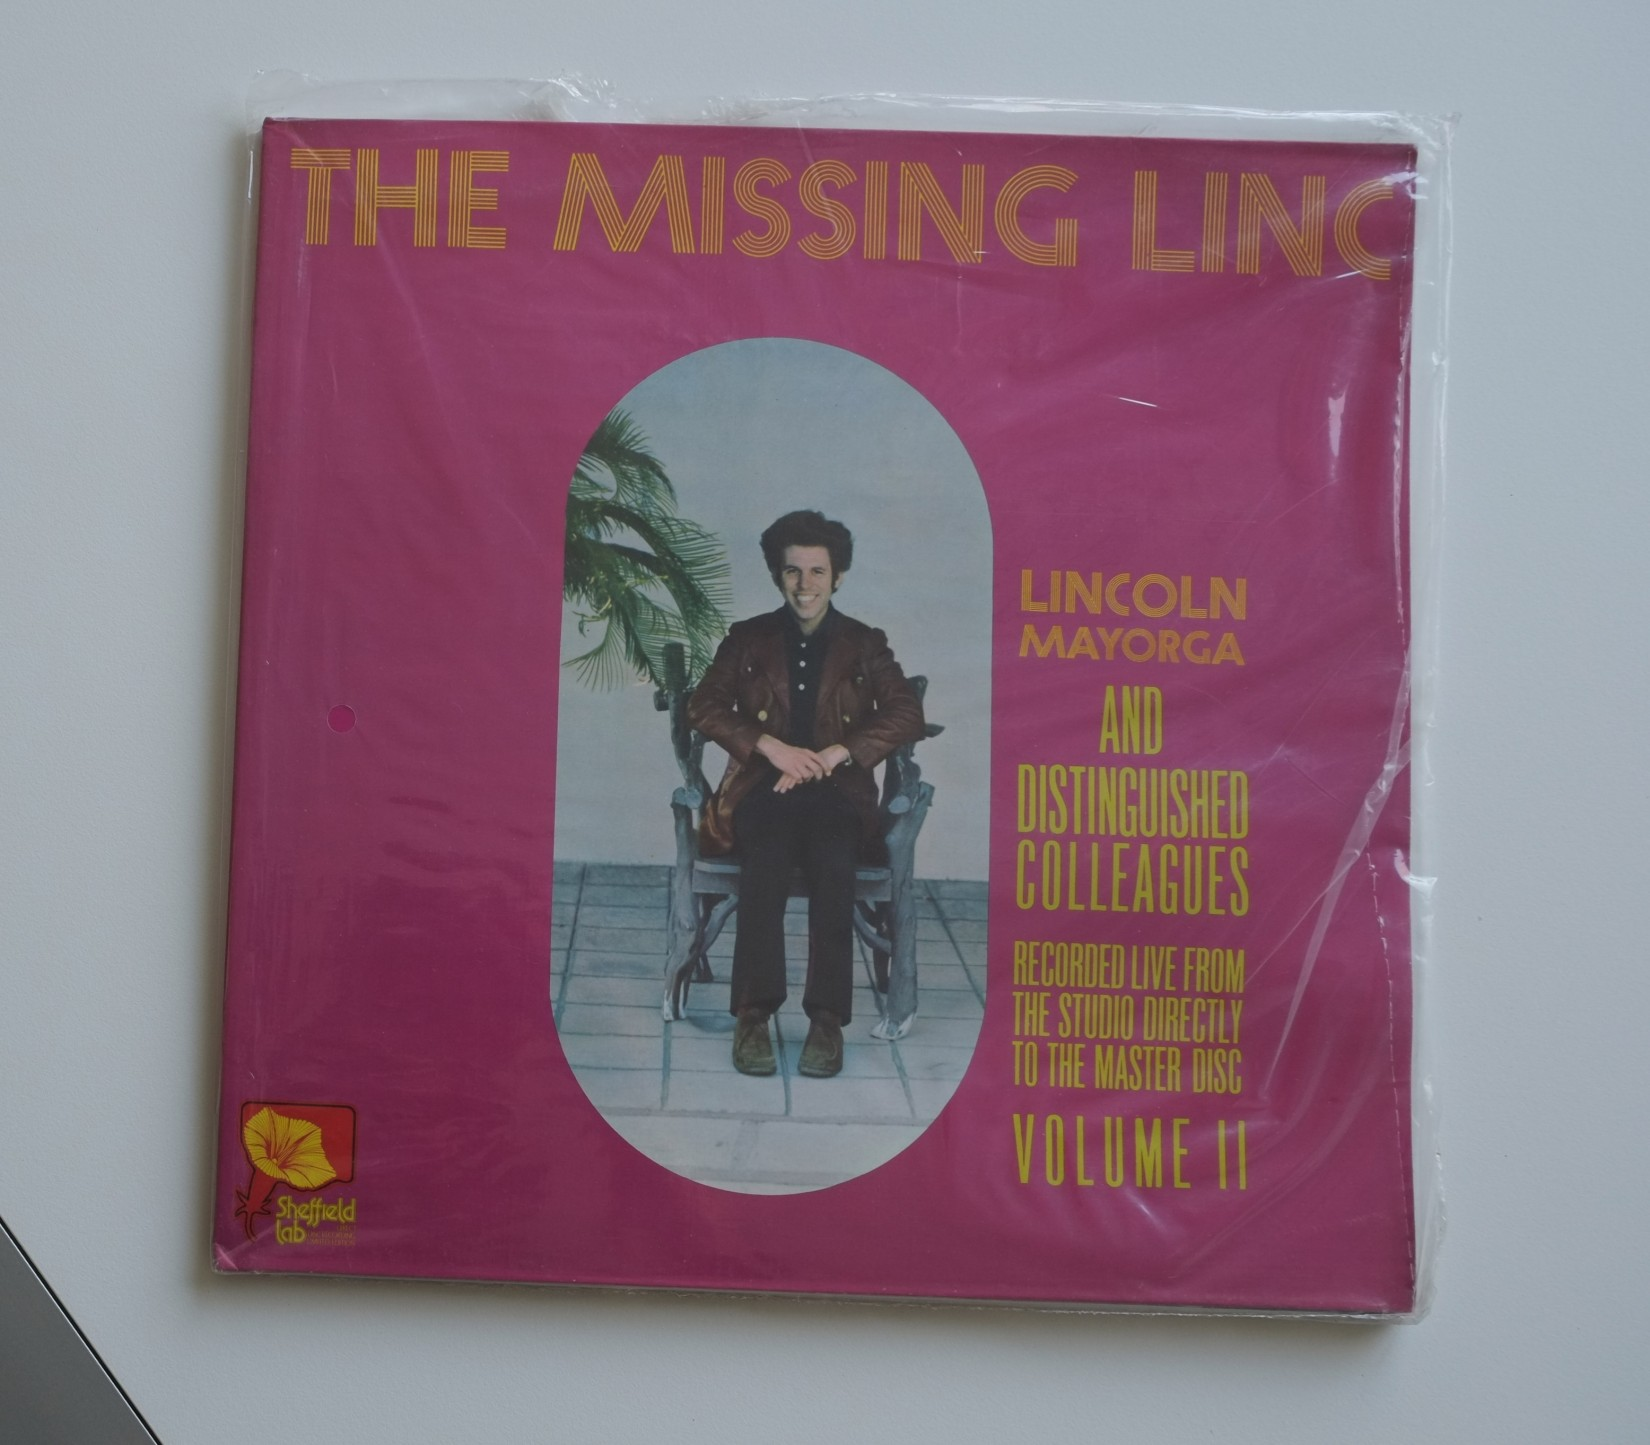 LP-Lincoln Mayorga - The Missing Linc-1